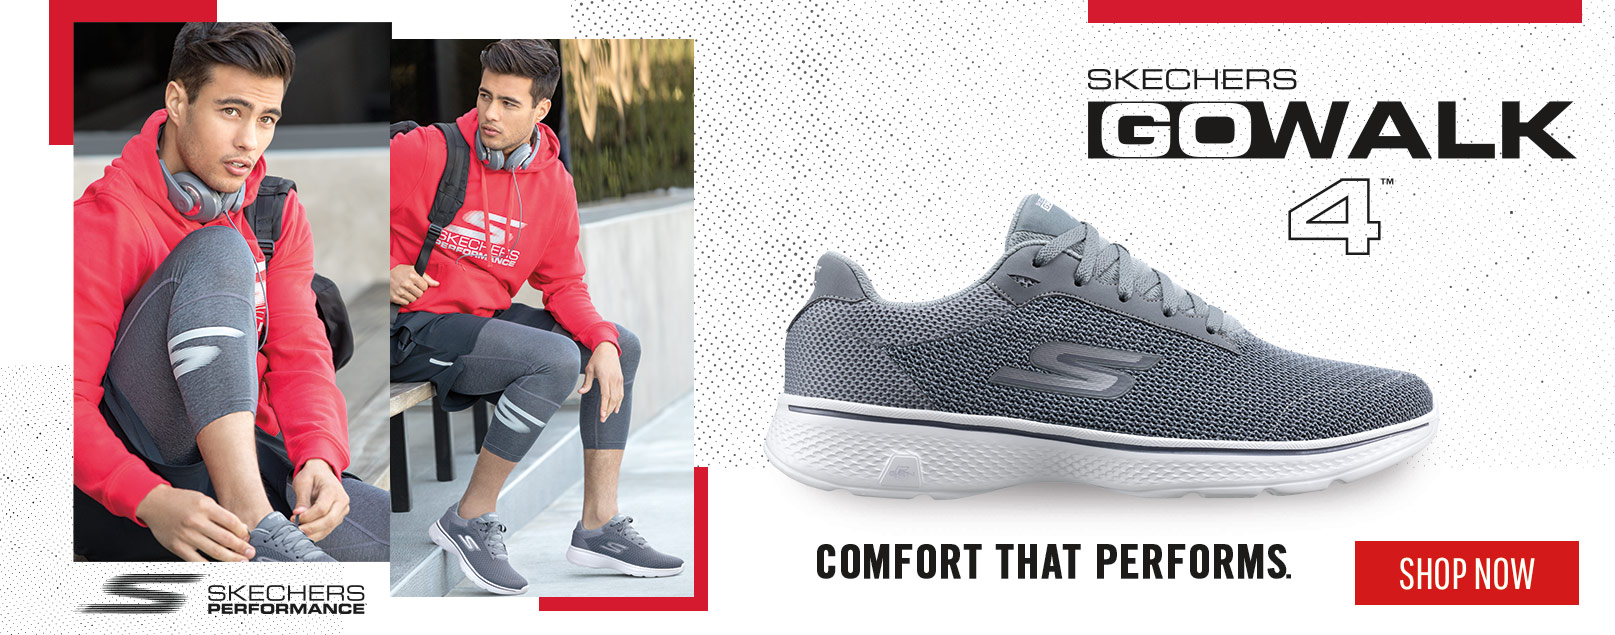 GET COMFORT AND STYLE WITH SKECHERS GOWALK 4'S